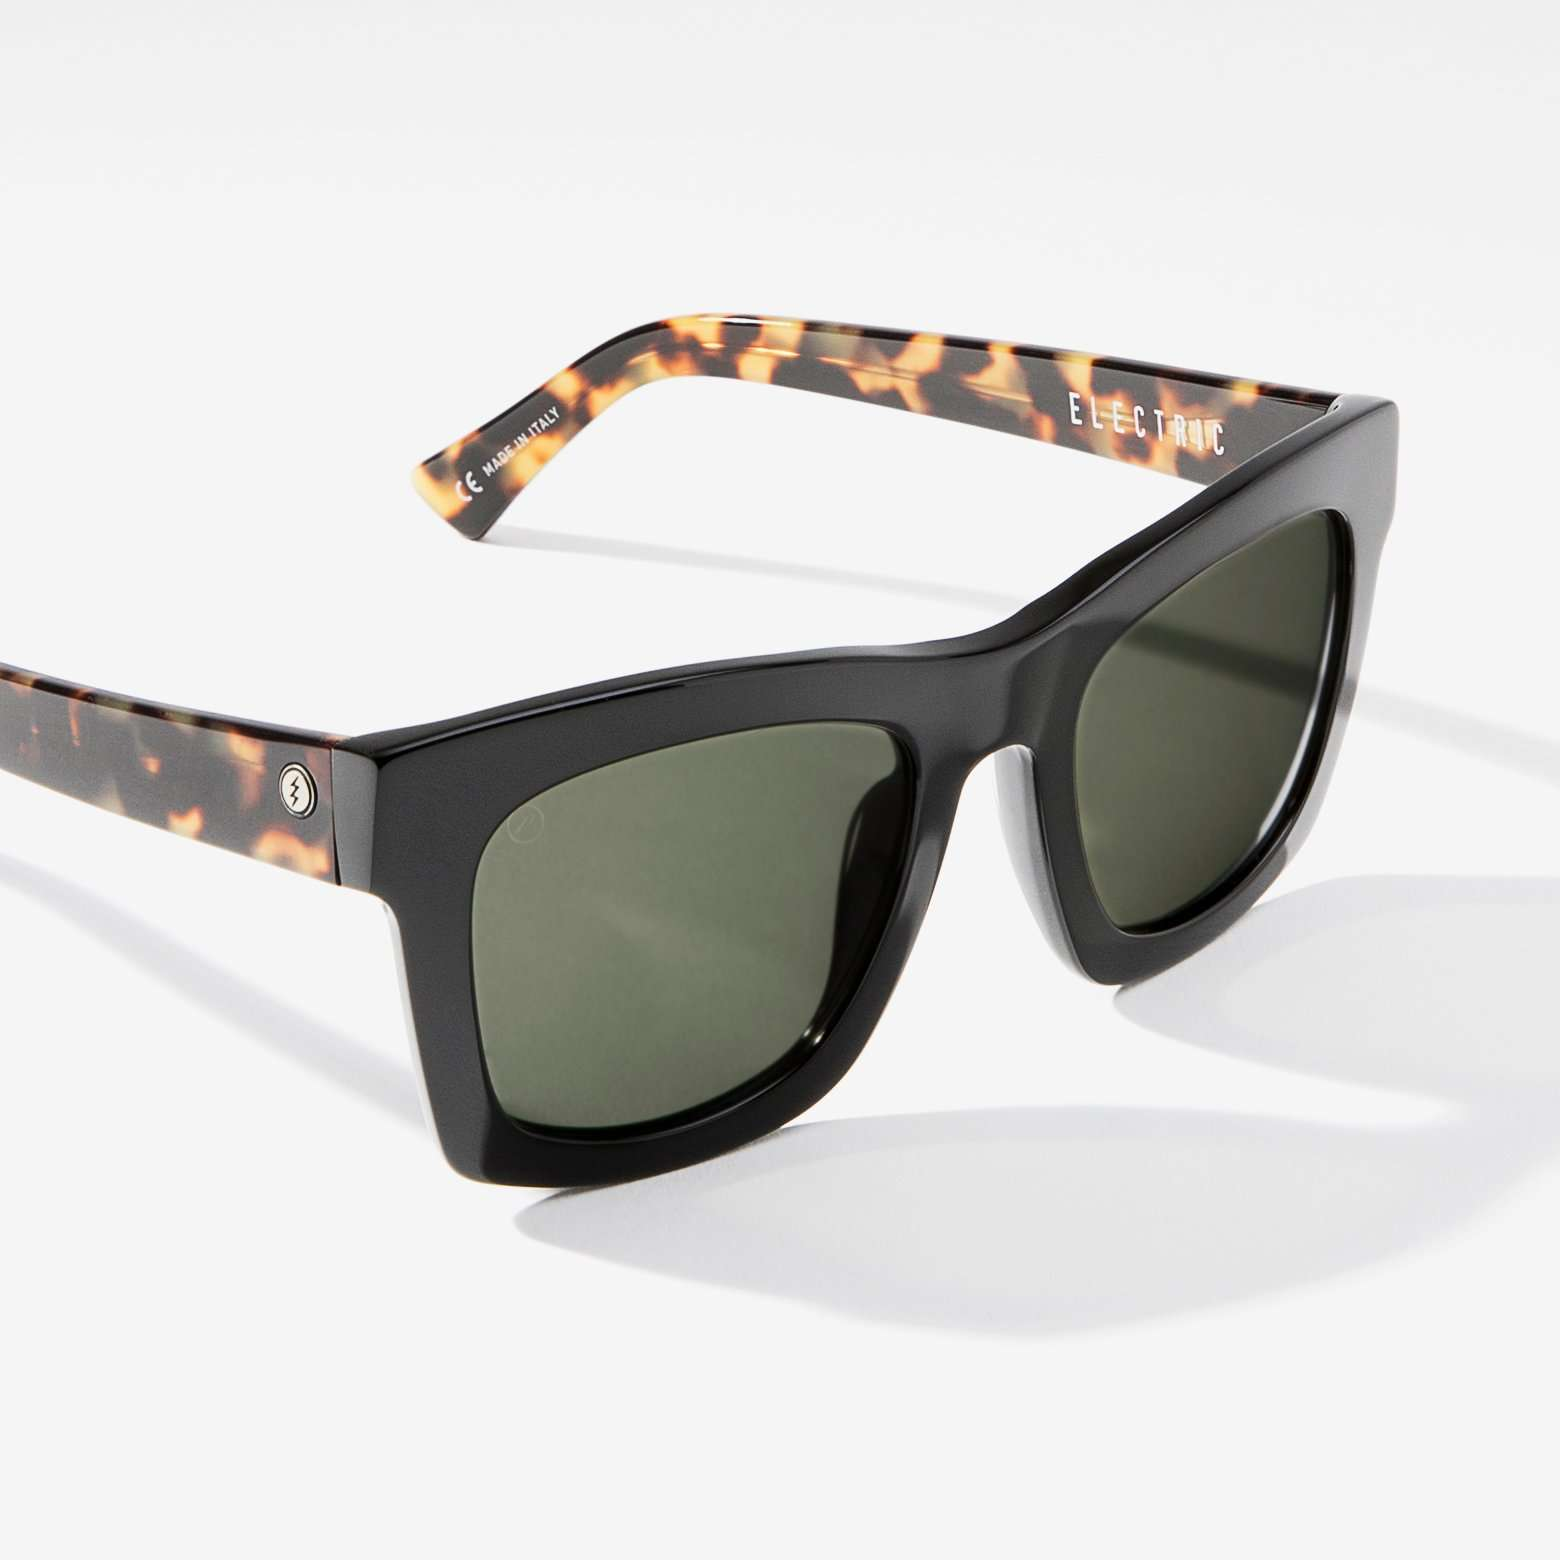 Electric Crasher Men and Women's Sunglass  - Obsidian Tort / Medium - 49mm / Grey Polarized